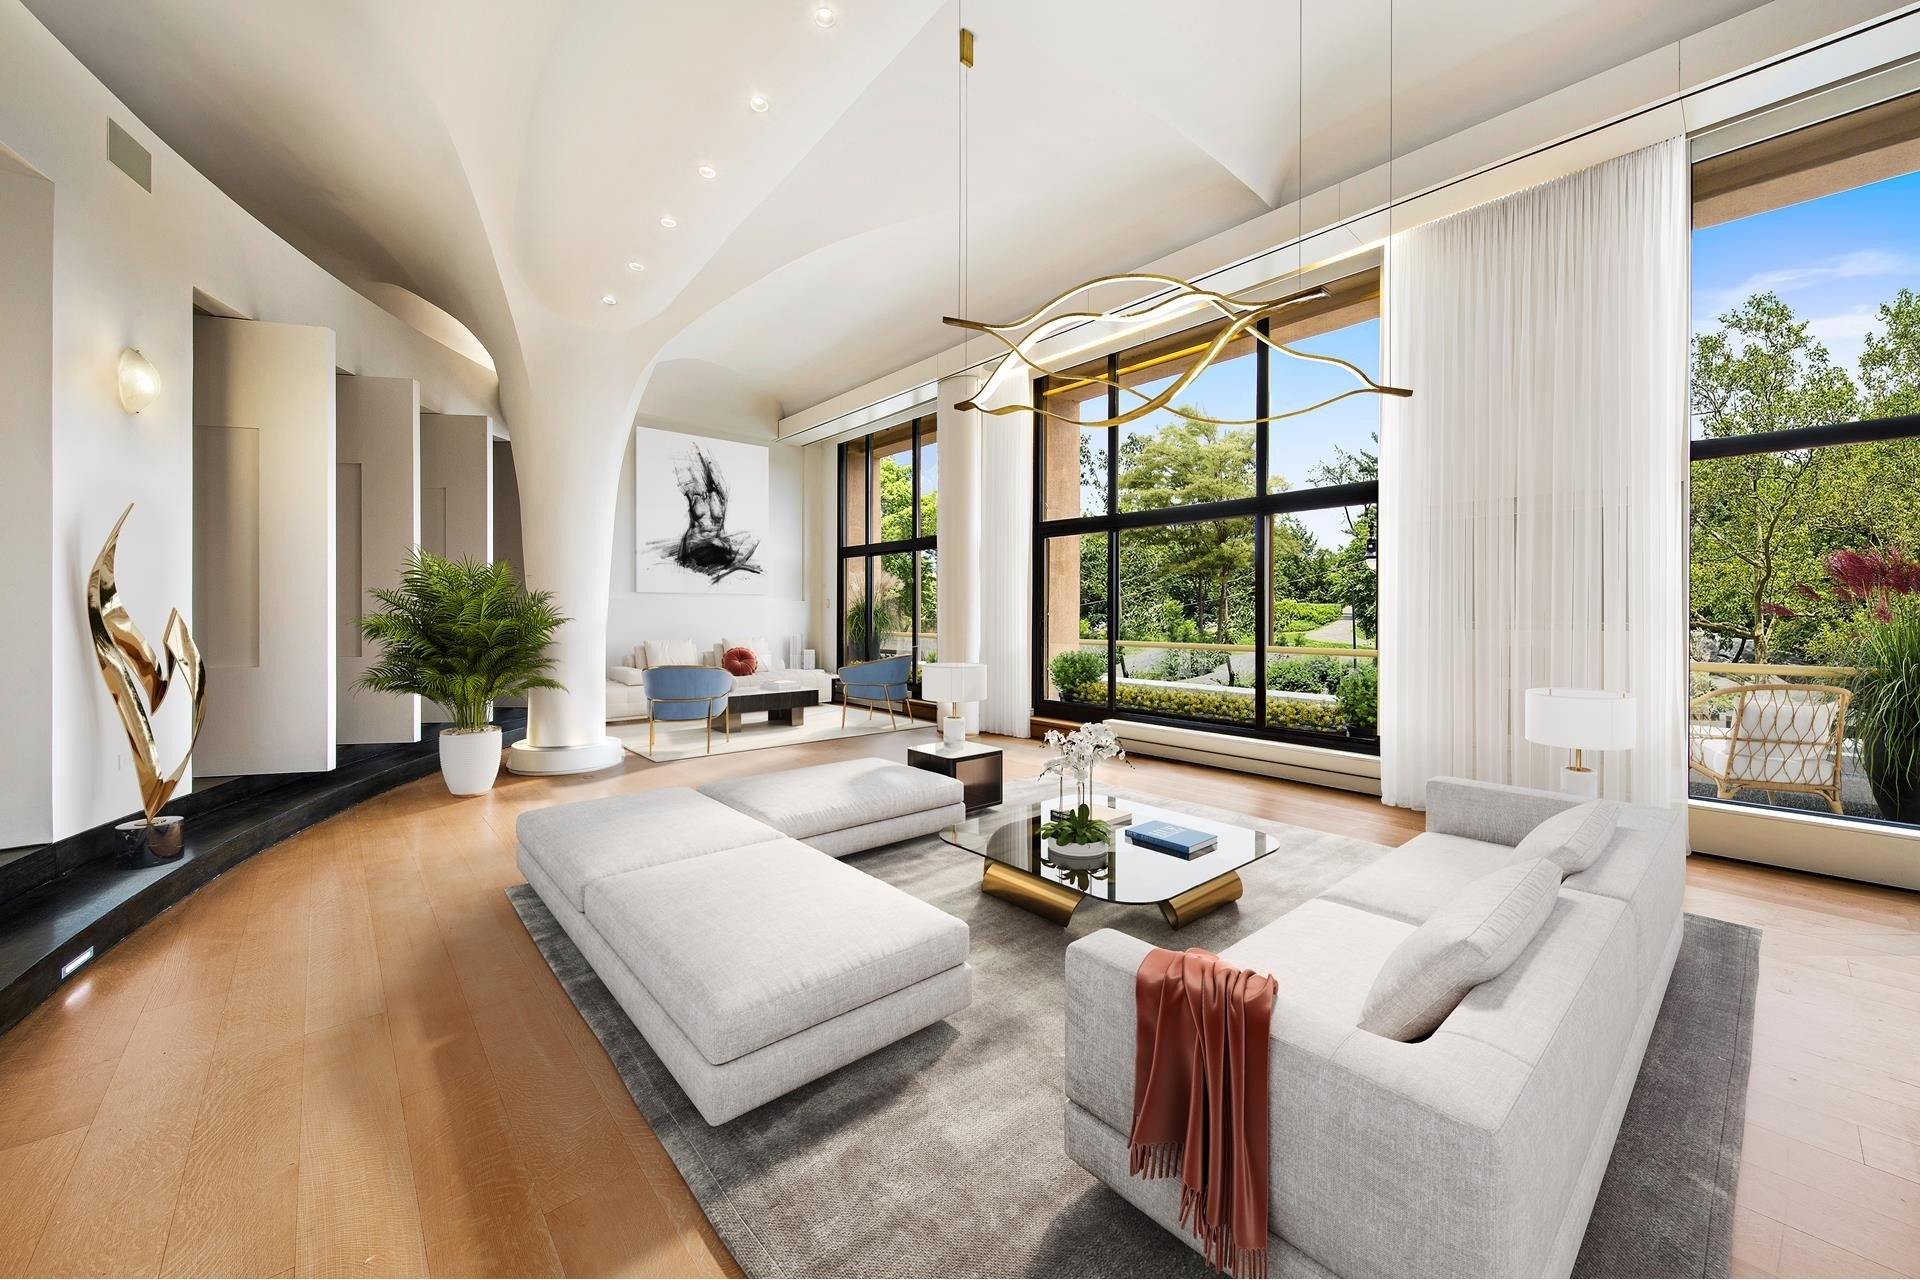 Condominium for Sale at 106 CENTRAL PARK S, L3A Central Park South, New York, NY 10019